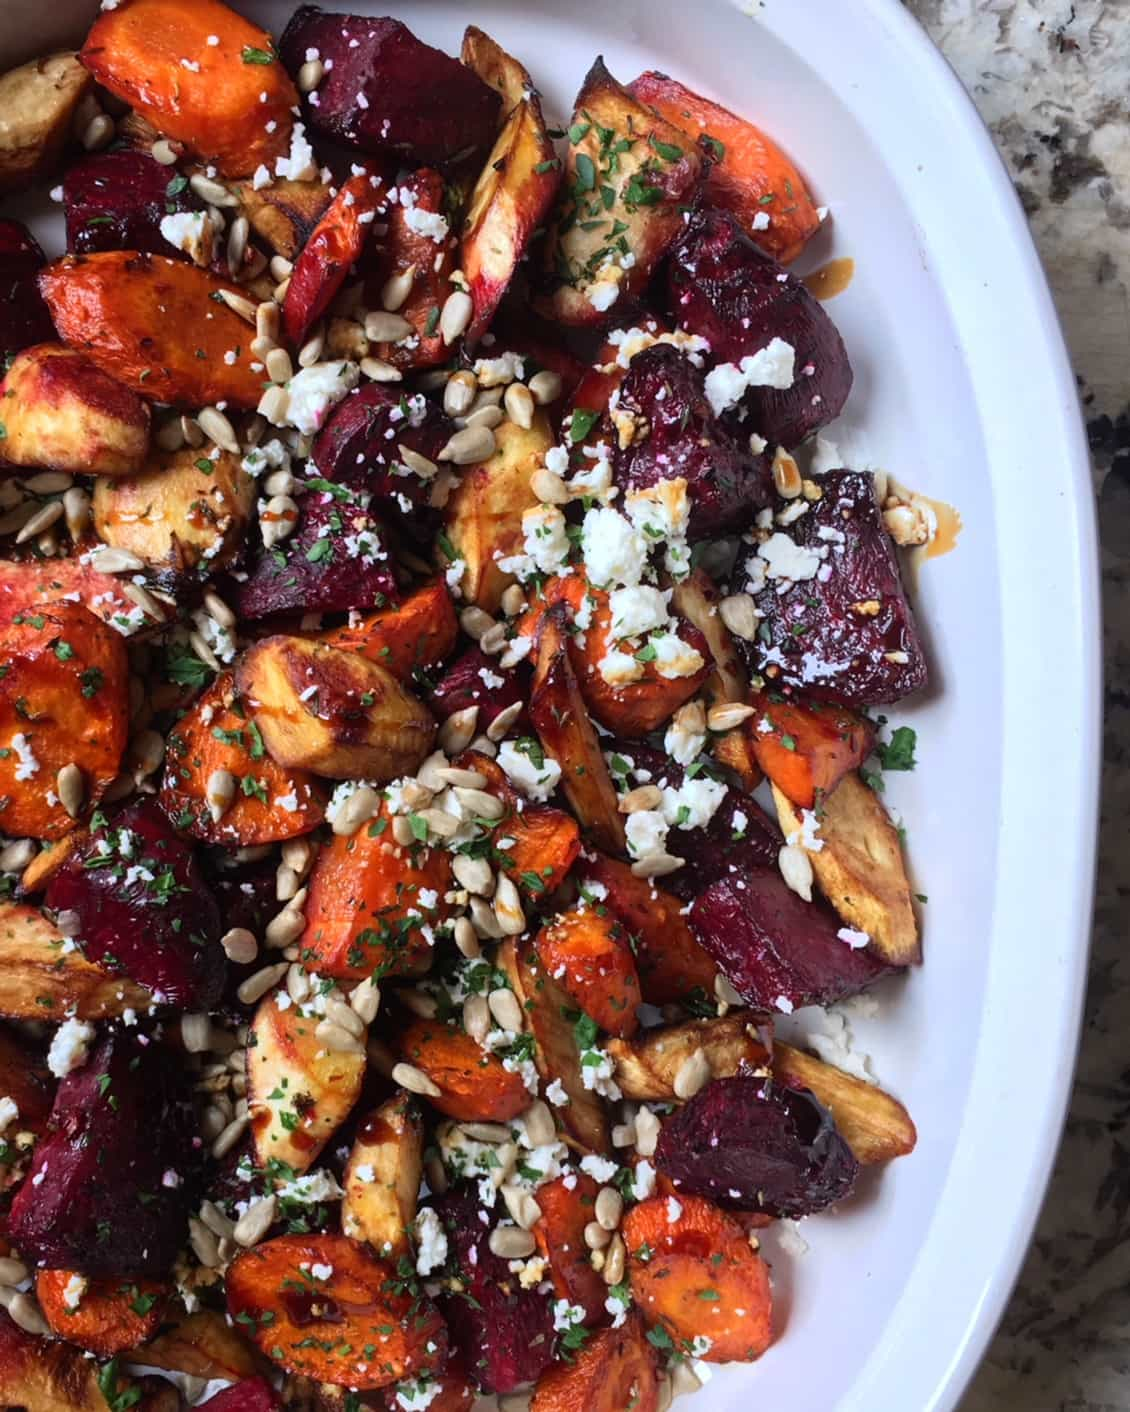 balsamic roasted veggies with feta